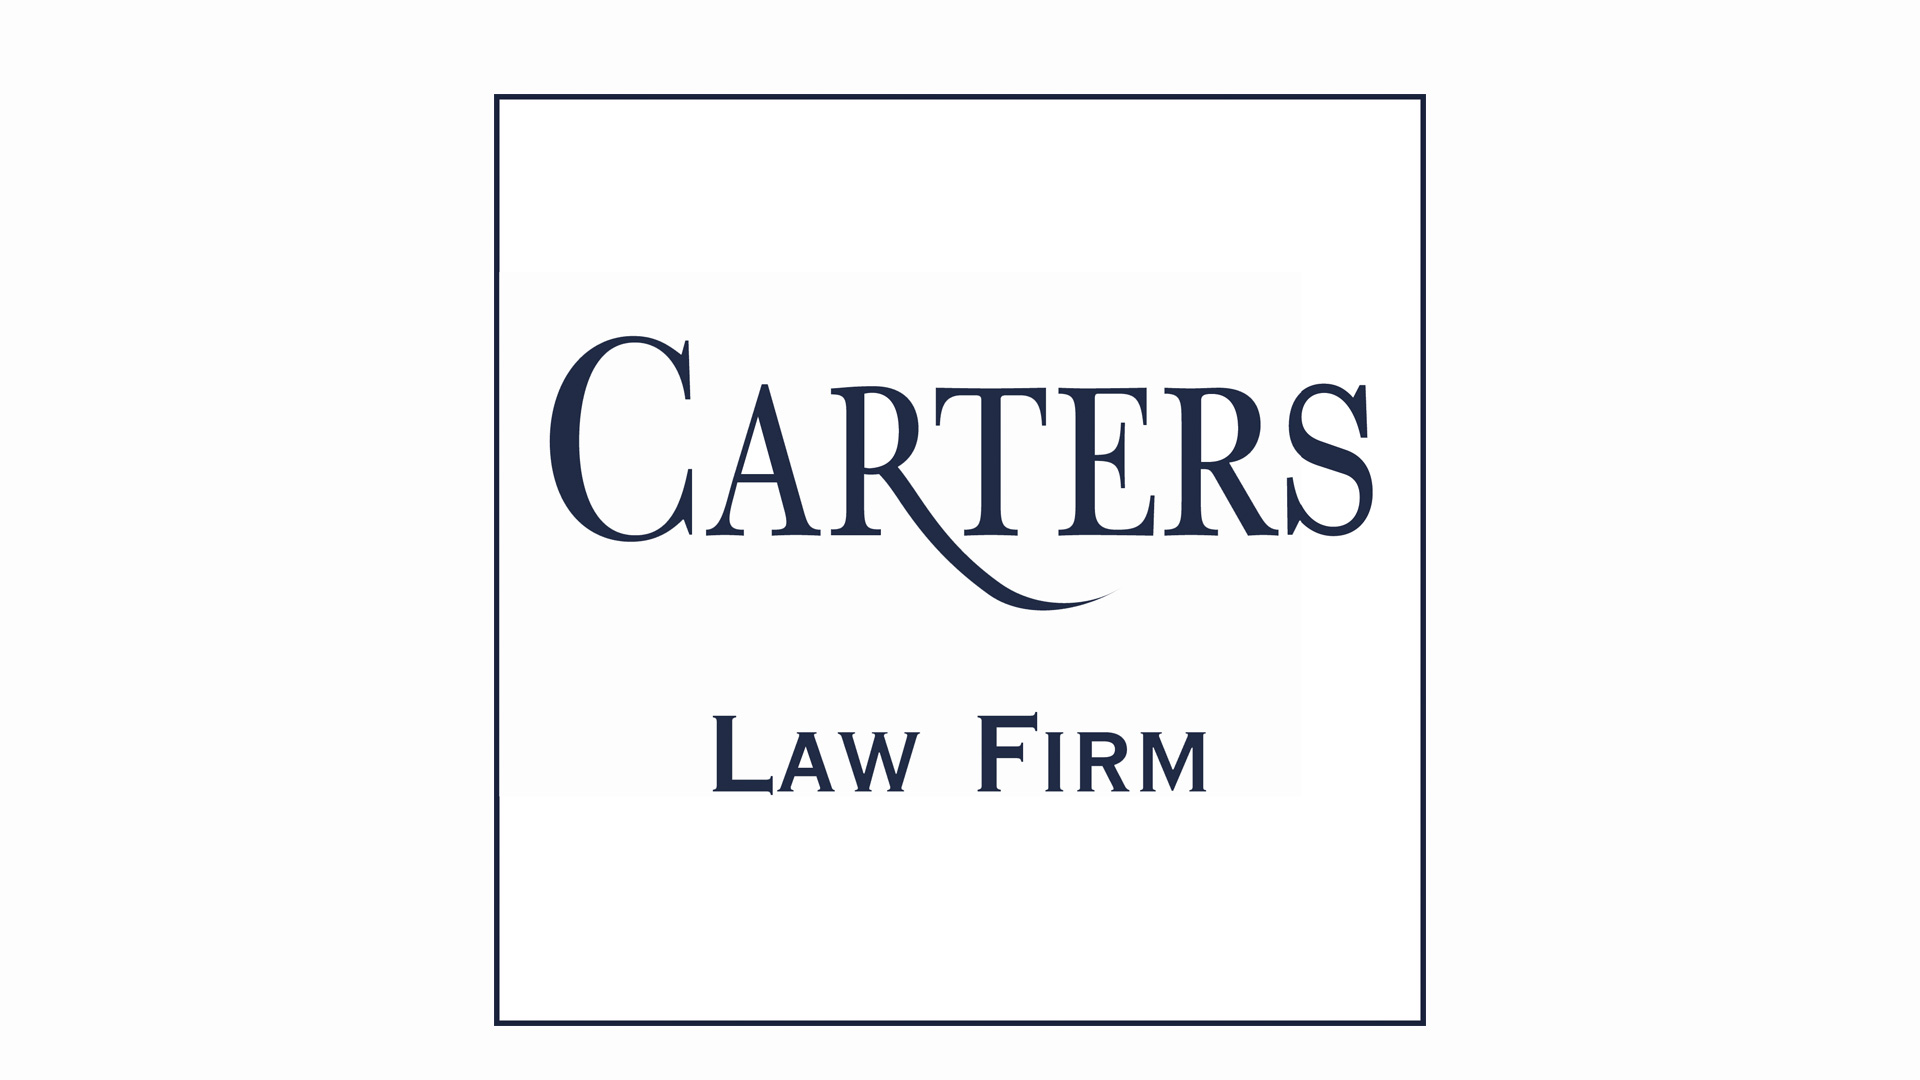 Carters Law Firm